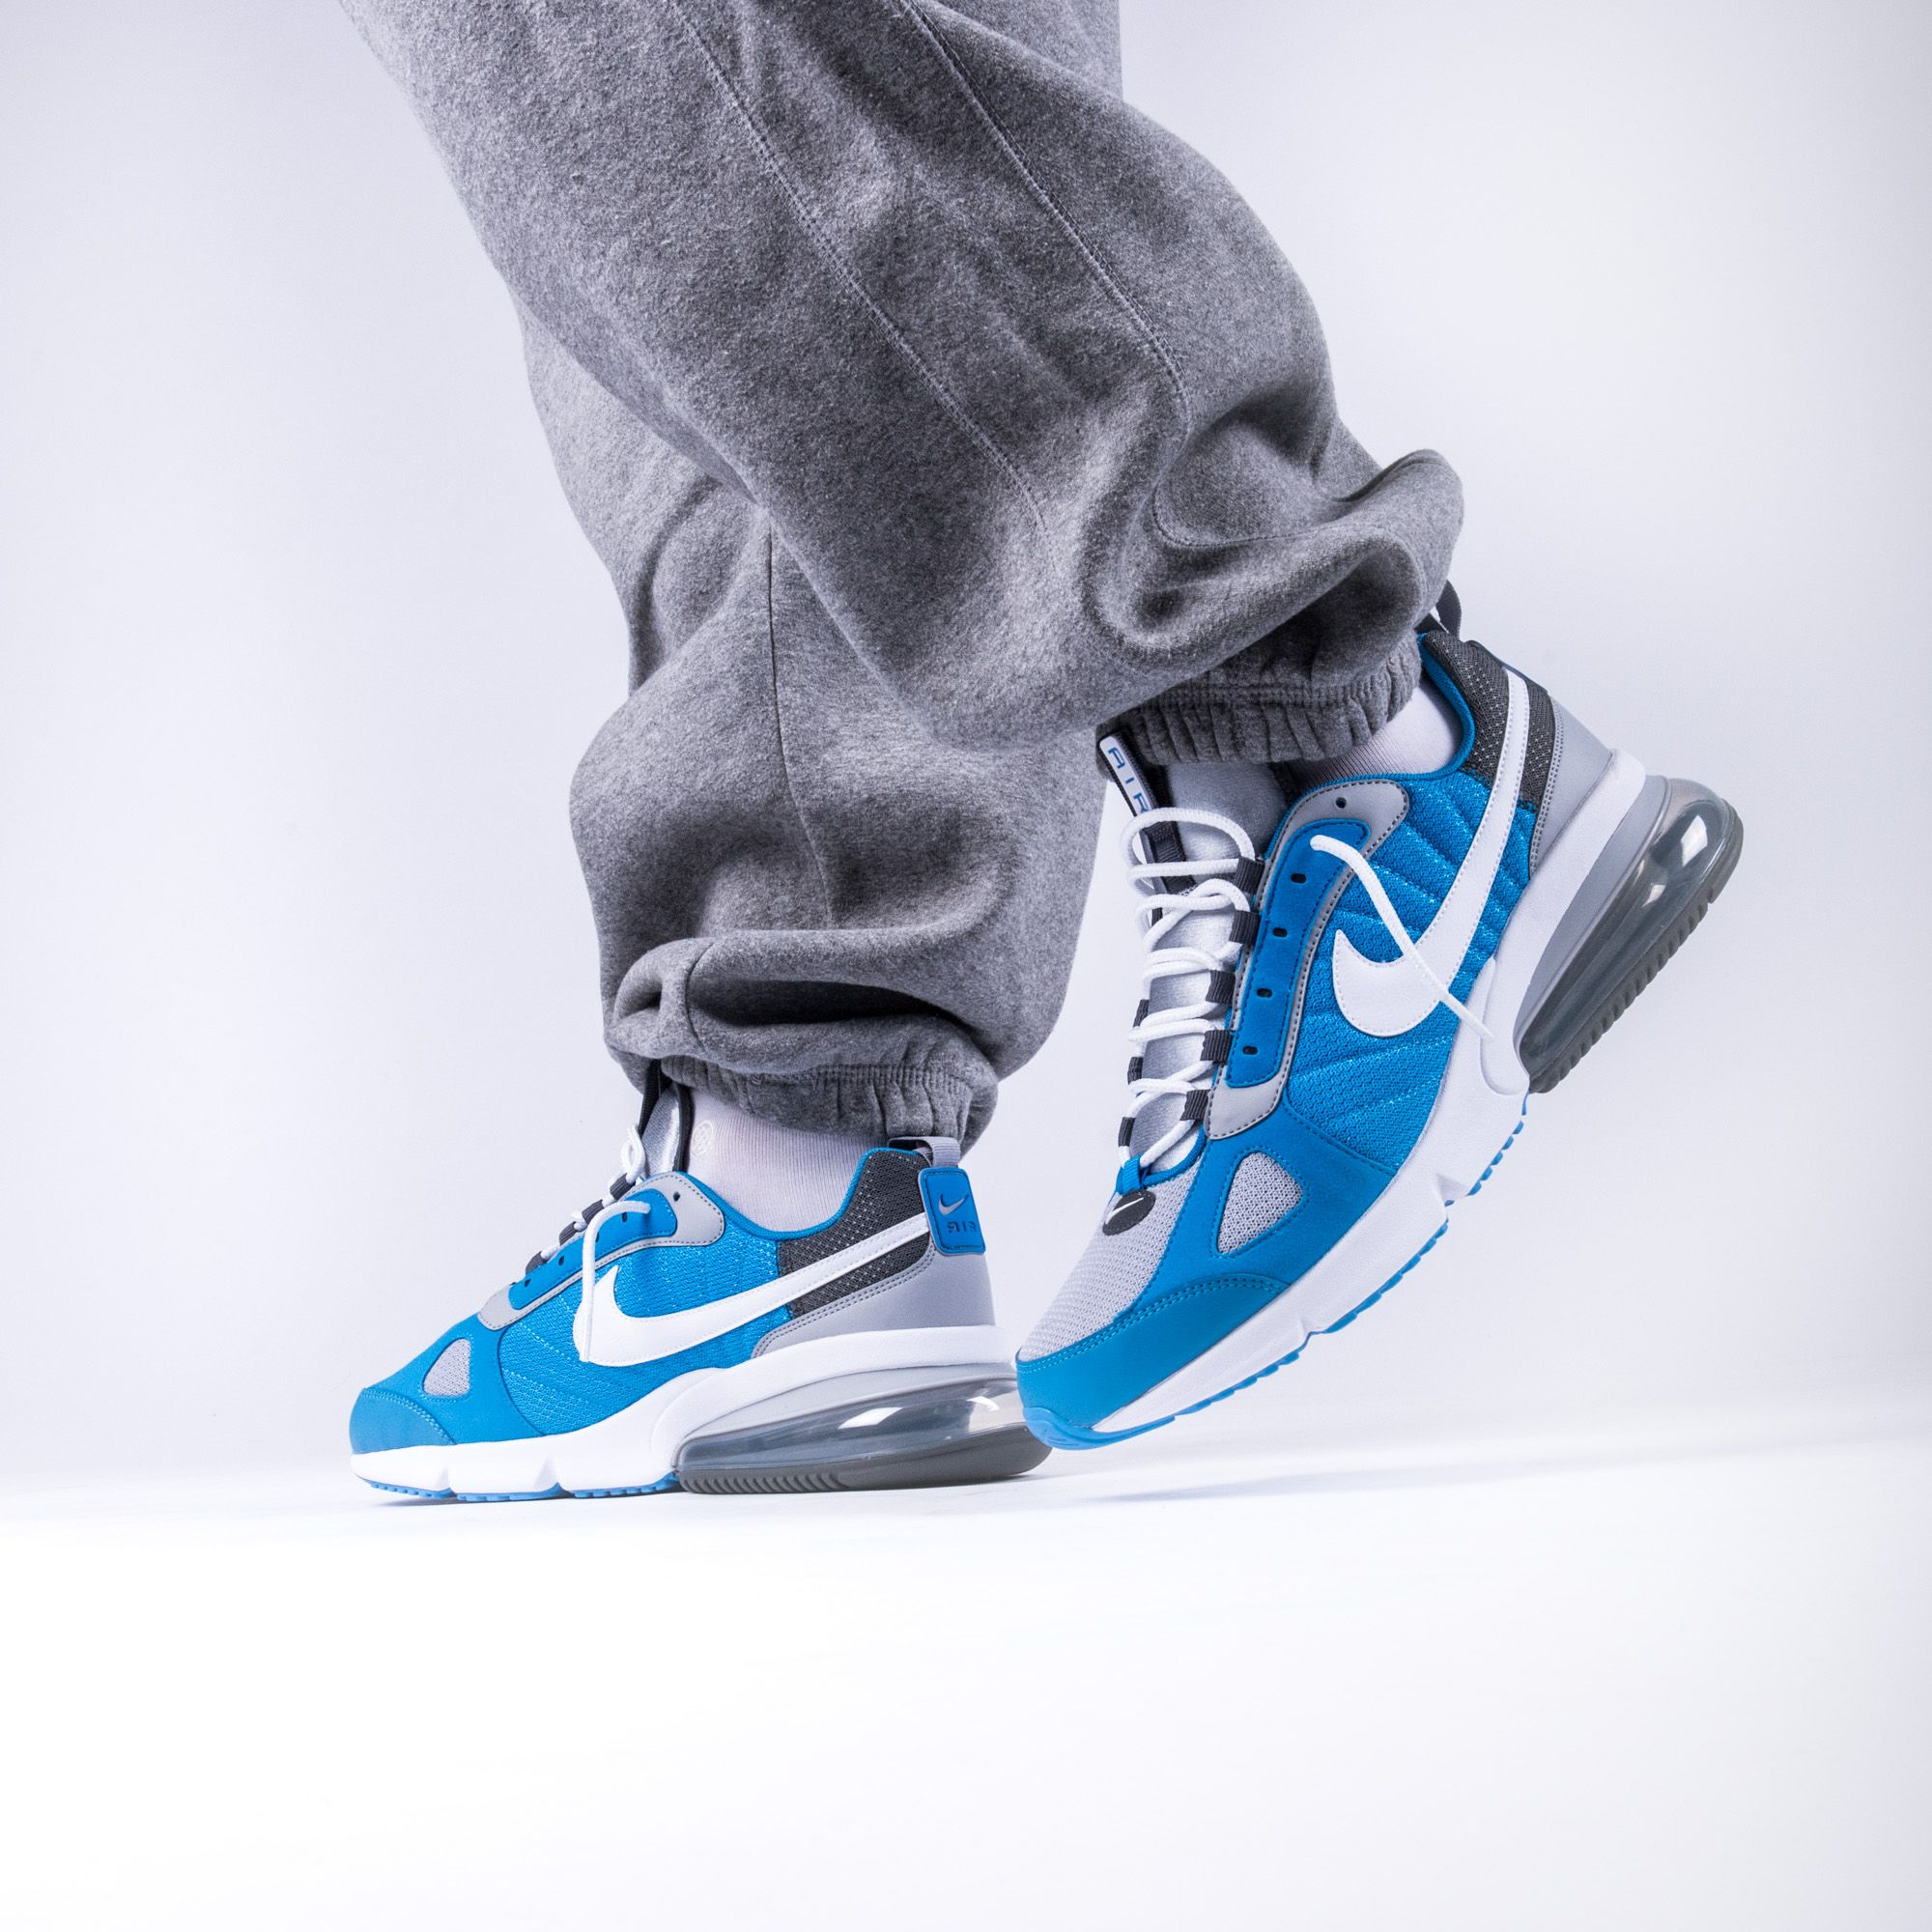 low cost ac2f8 435f0 BACK TO THE FUTURE! The Nike Air Max 270 Futura combines the ...